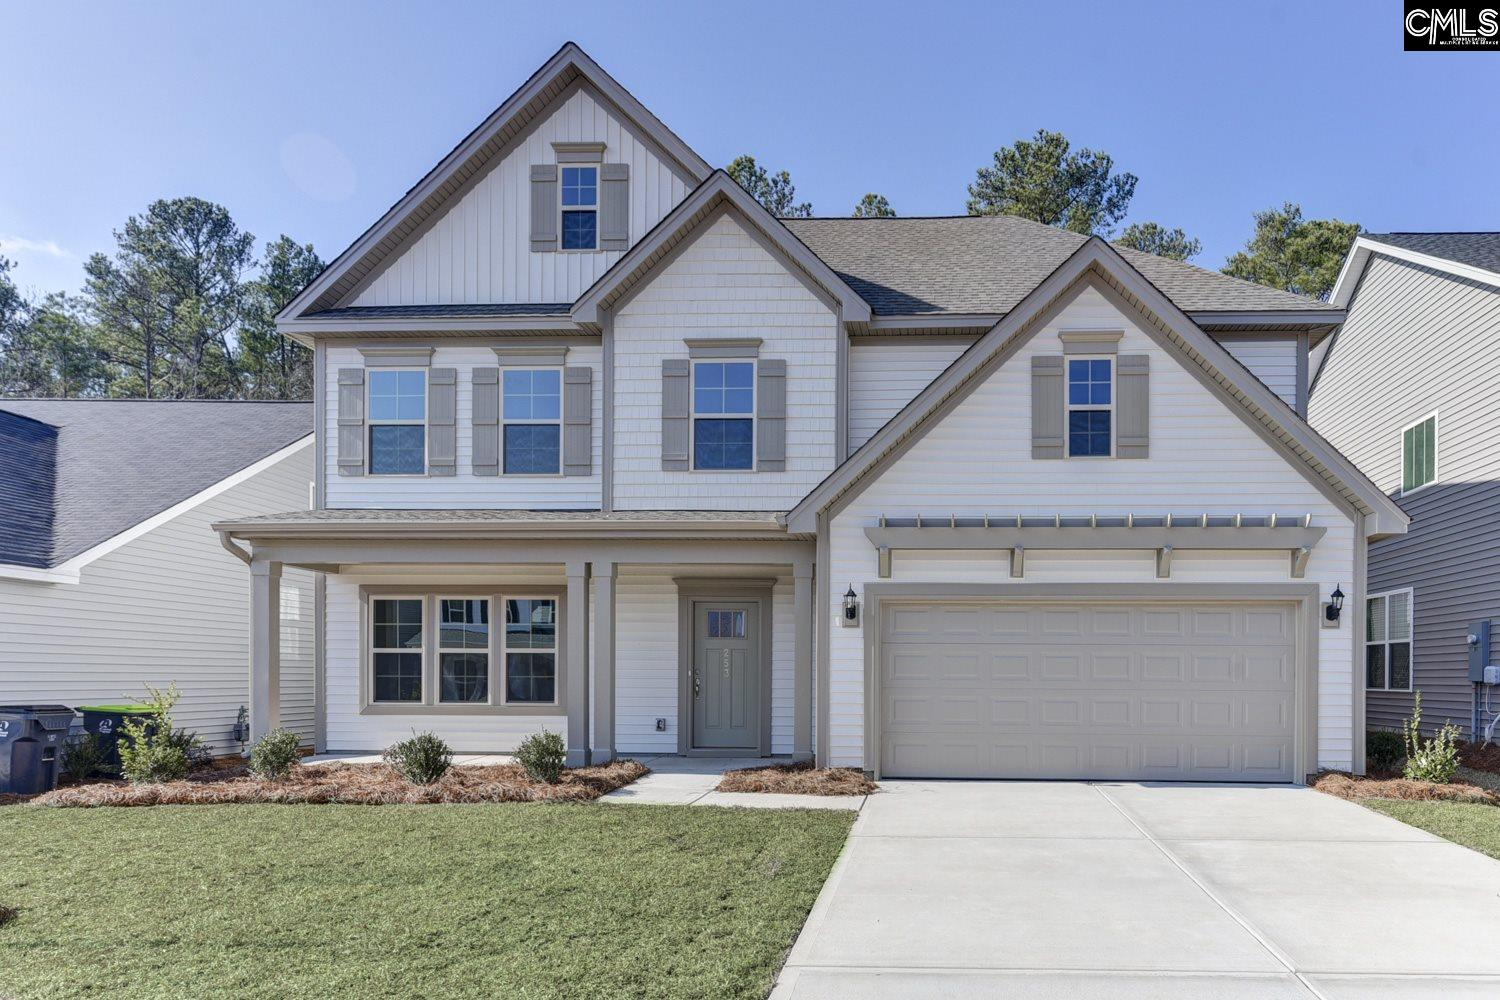 253 Avensong Lexington, SC 29072